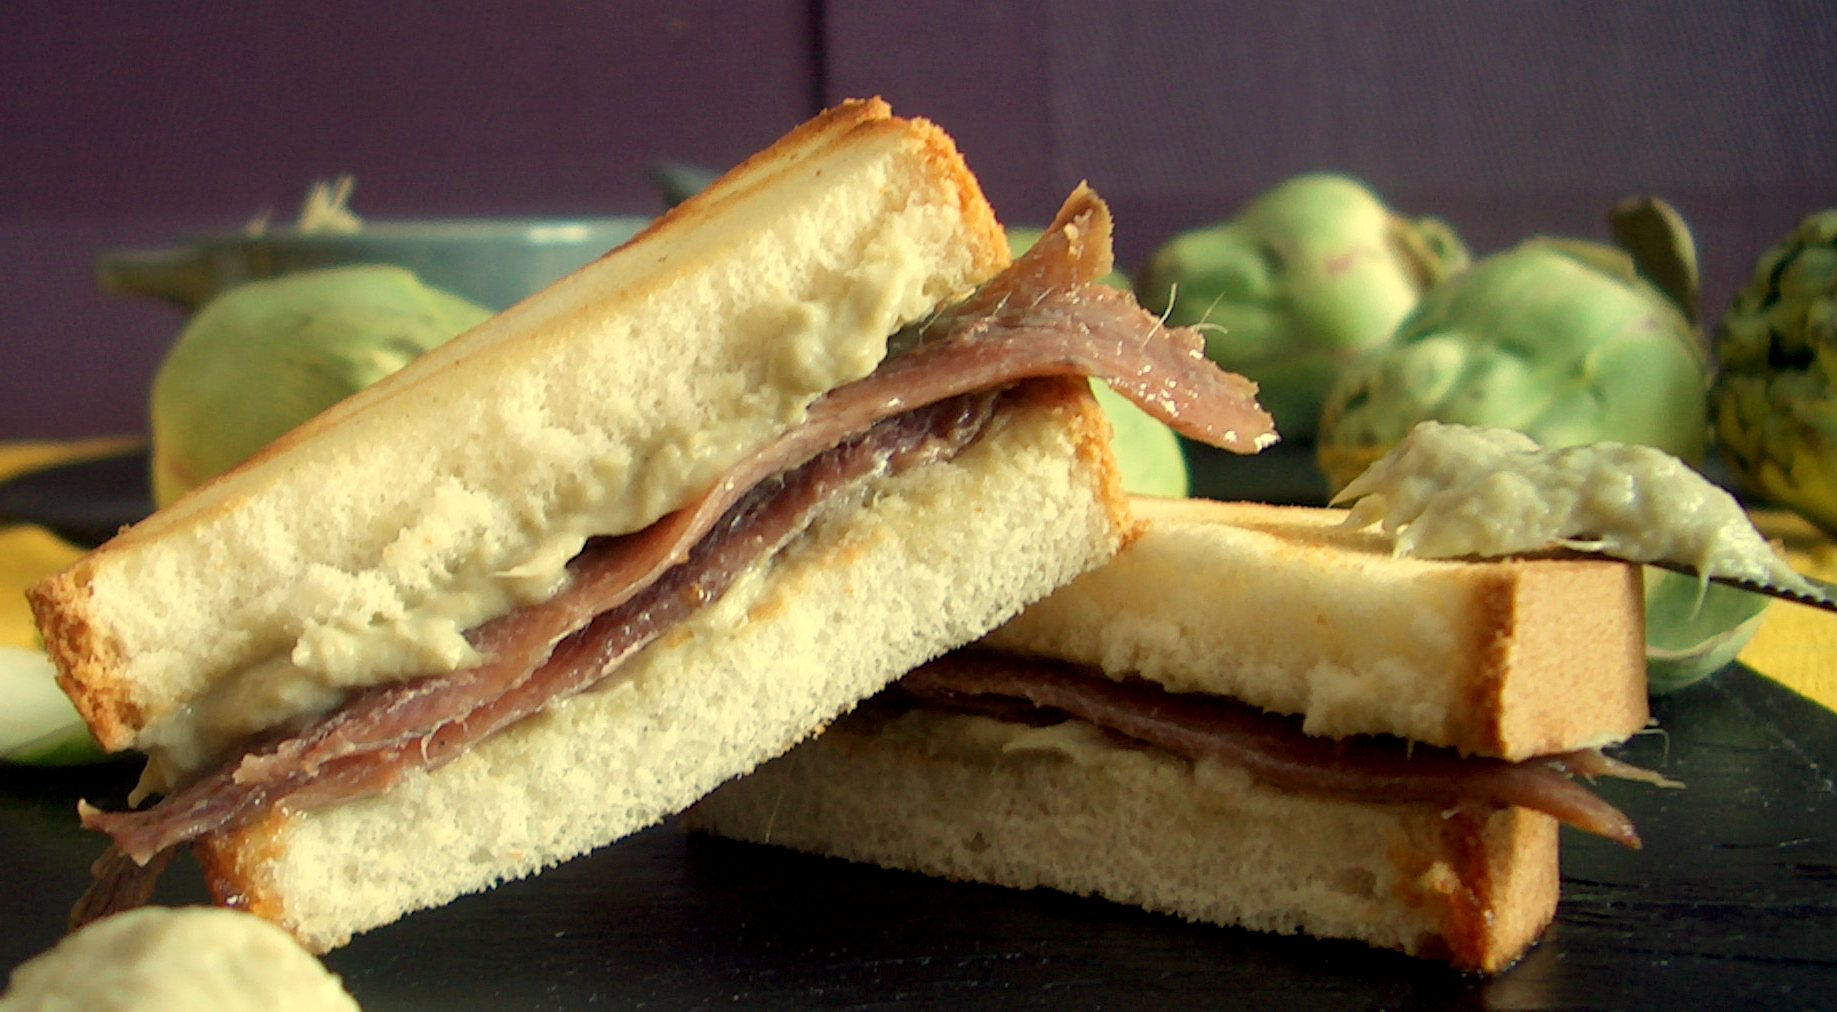 Anchovy Sandwich